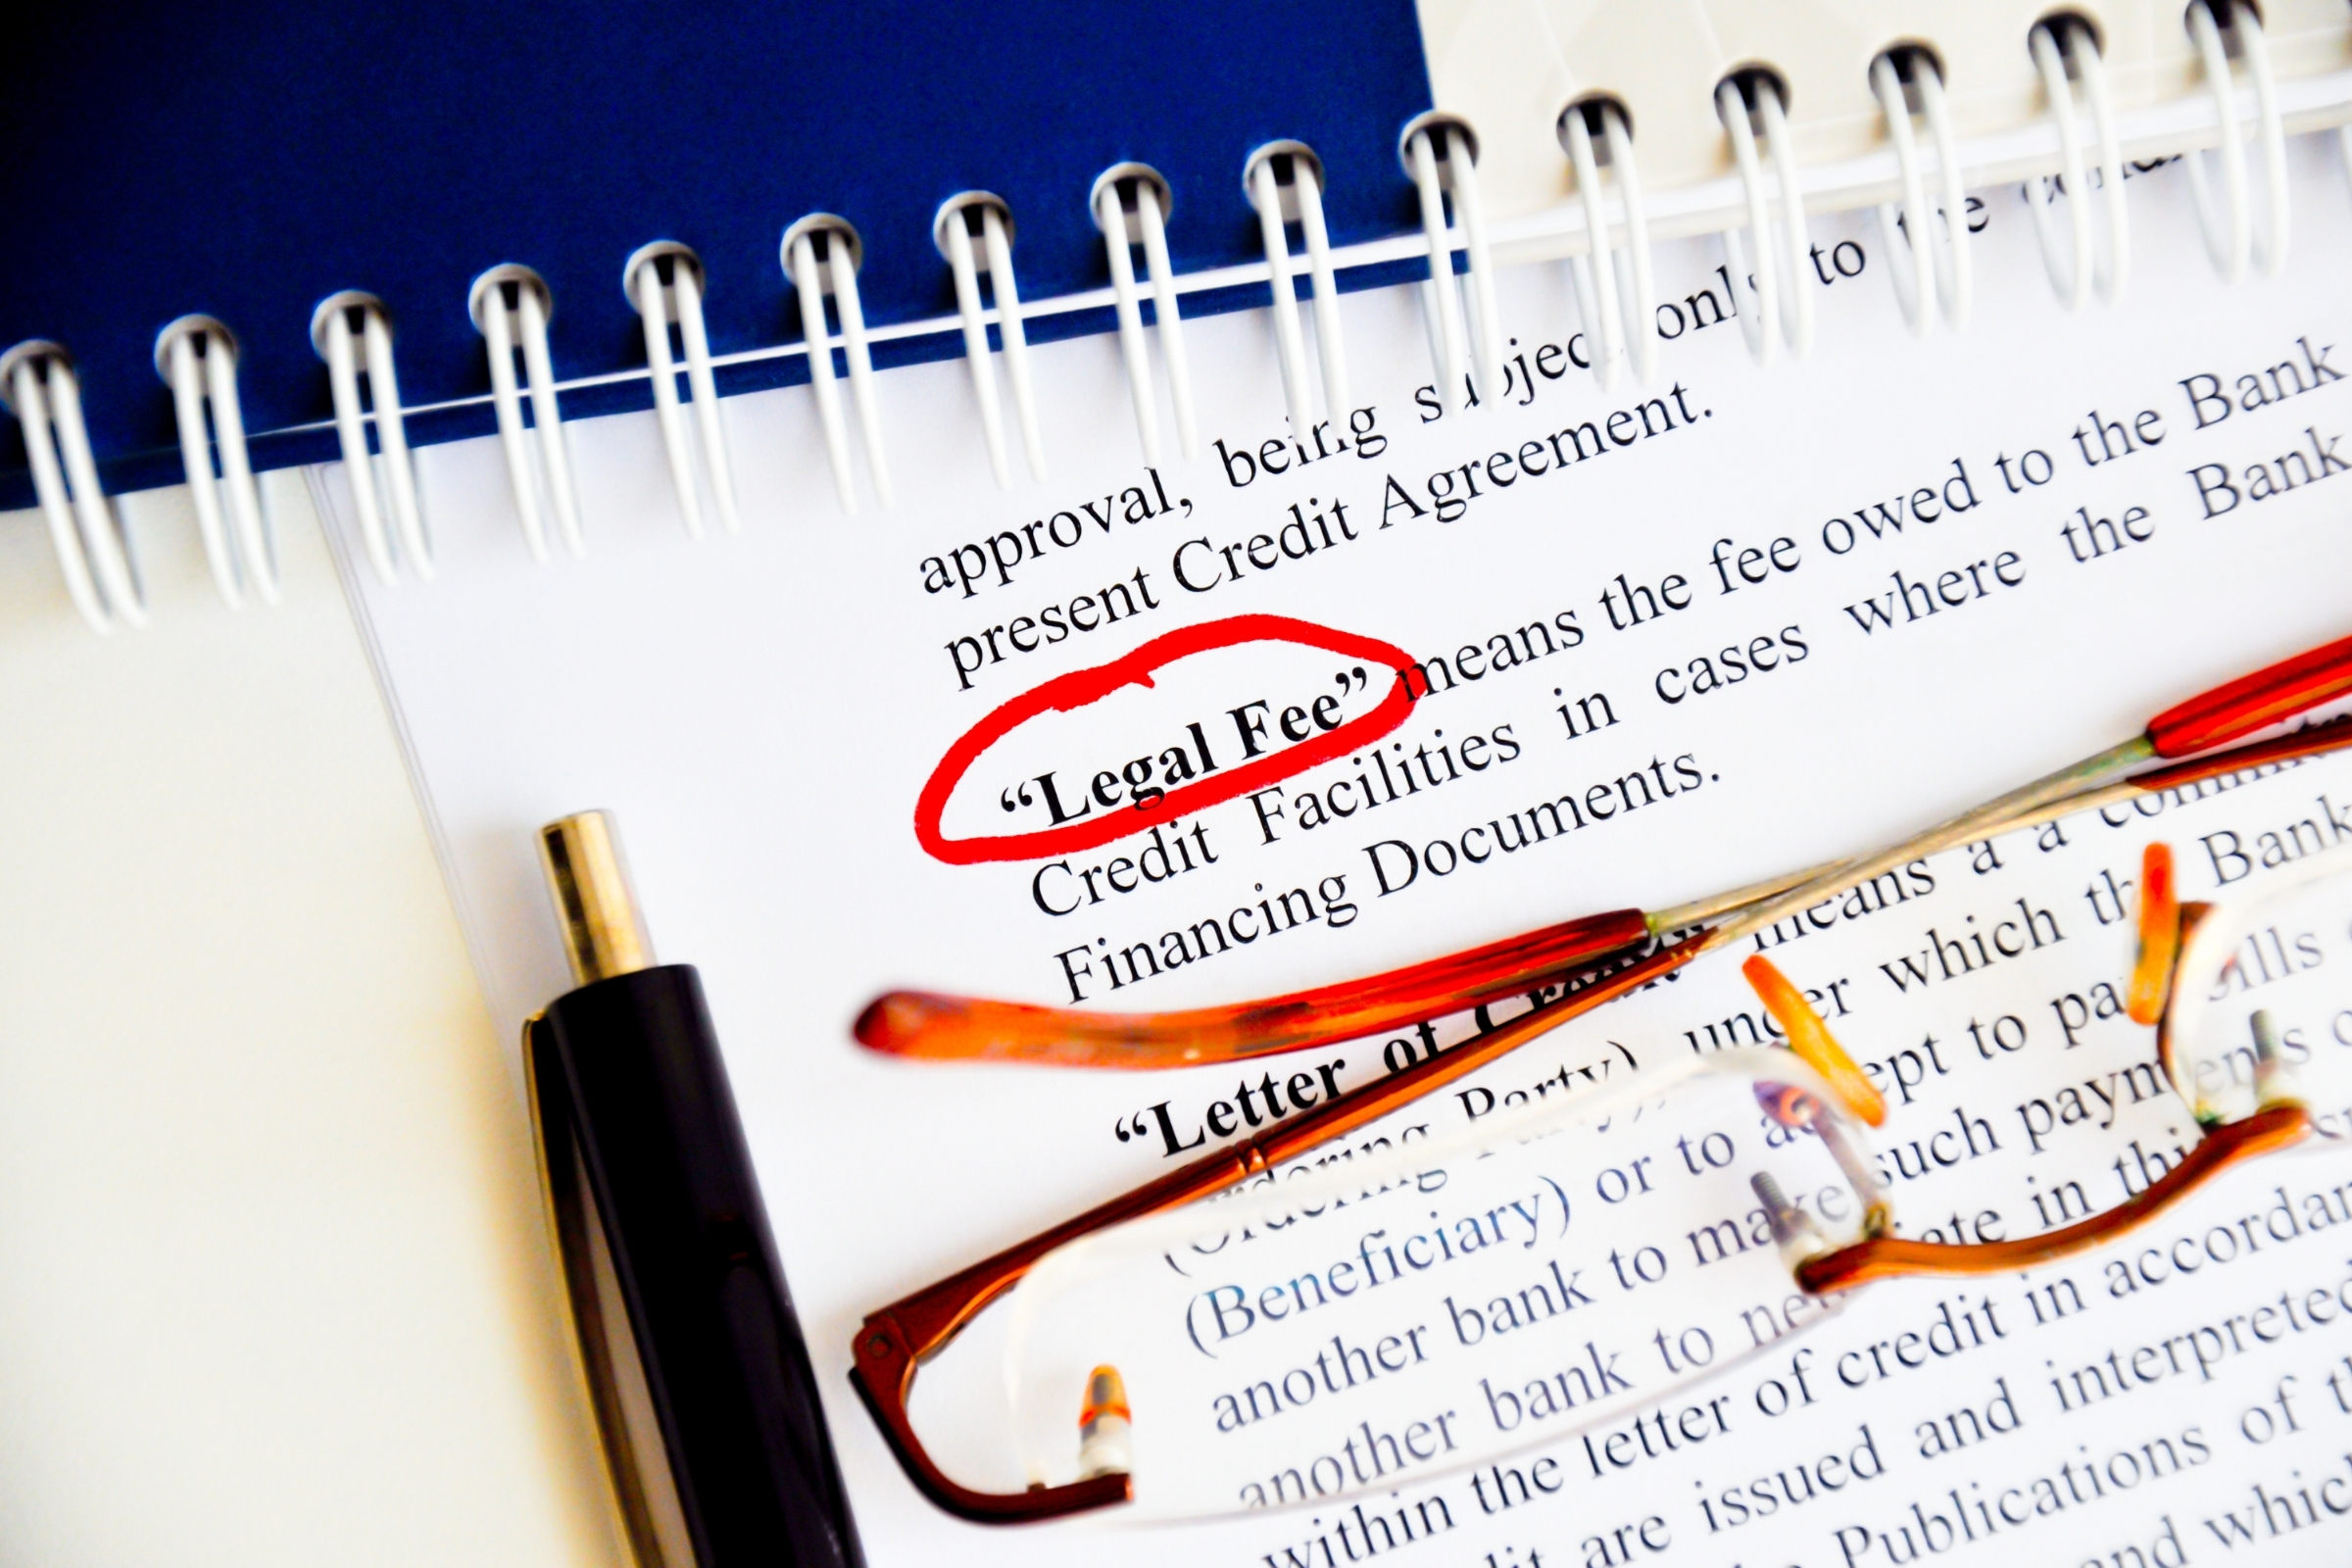 Legal Fees Credit with The Inglis Team